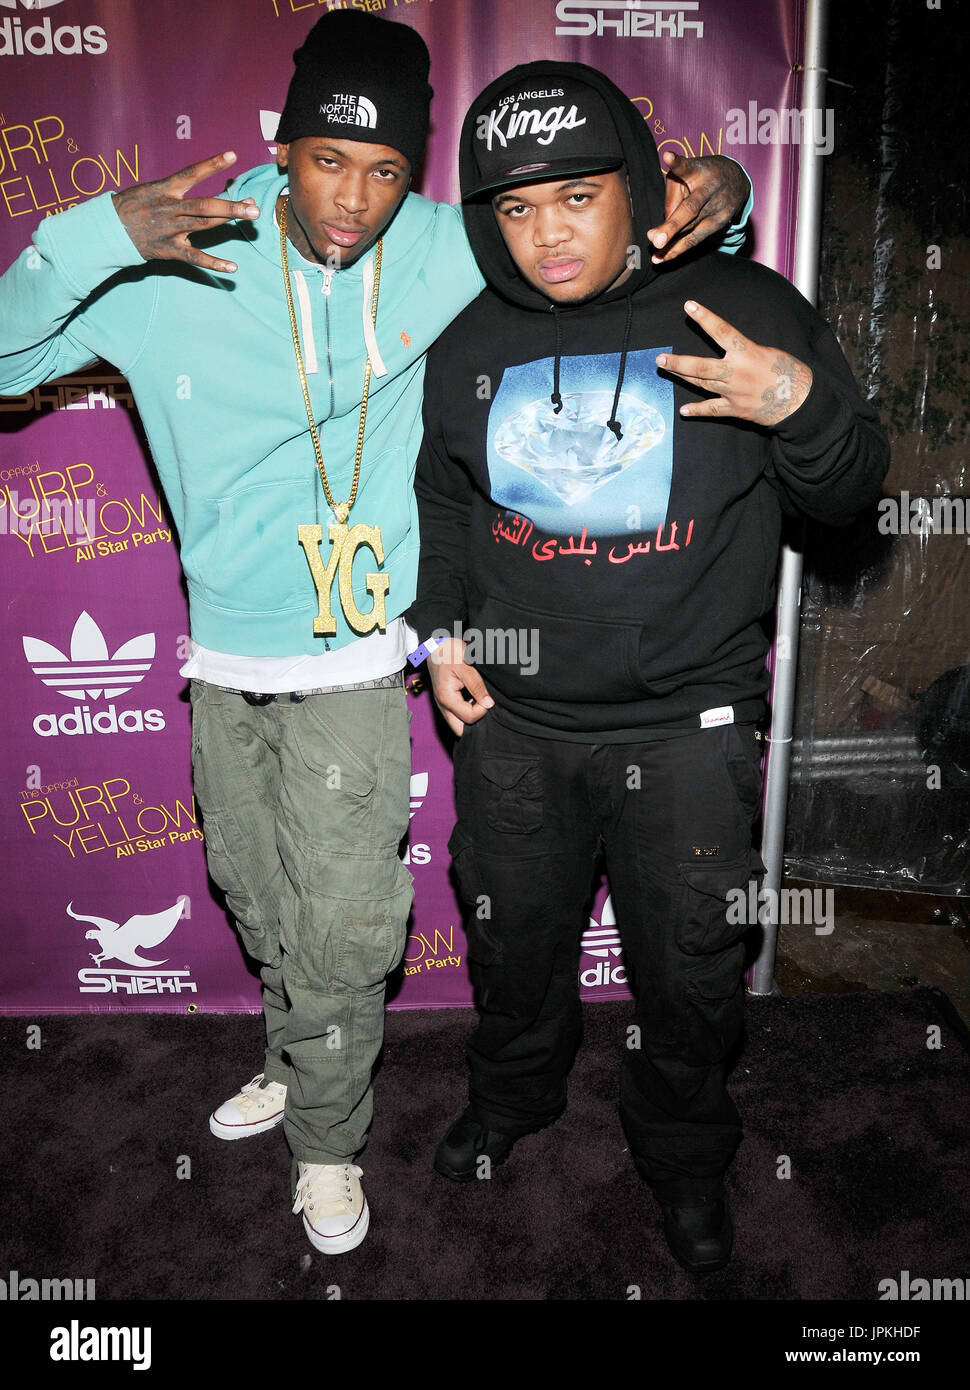 Def Jam Artist Yg Dj Mustard At The Official Purp Yellow Nba All Star Party Held At J Lounge In Los Angeles Ca The Event Took Place On Friday February